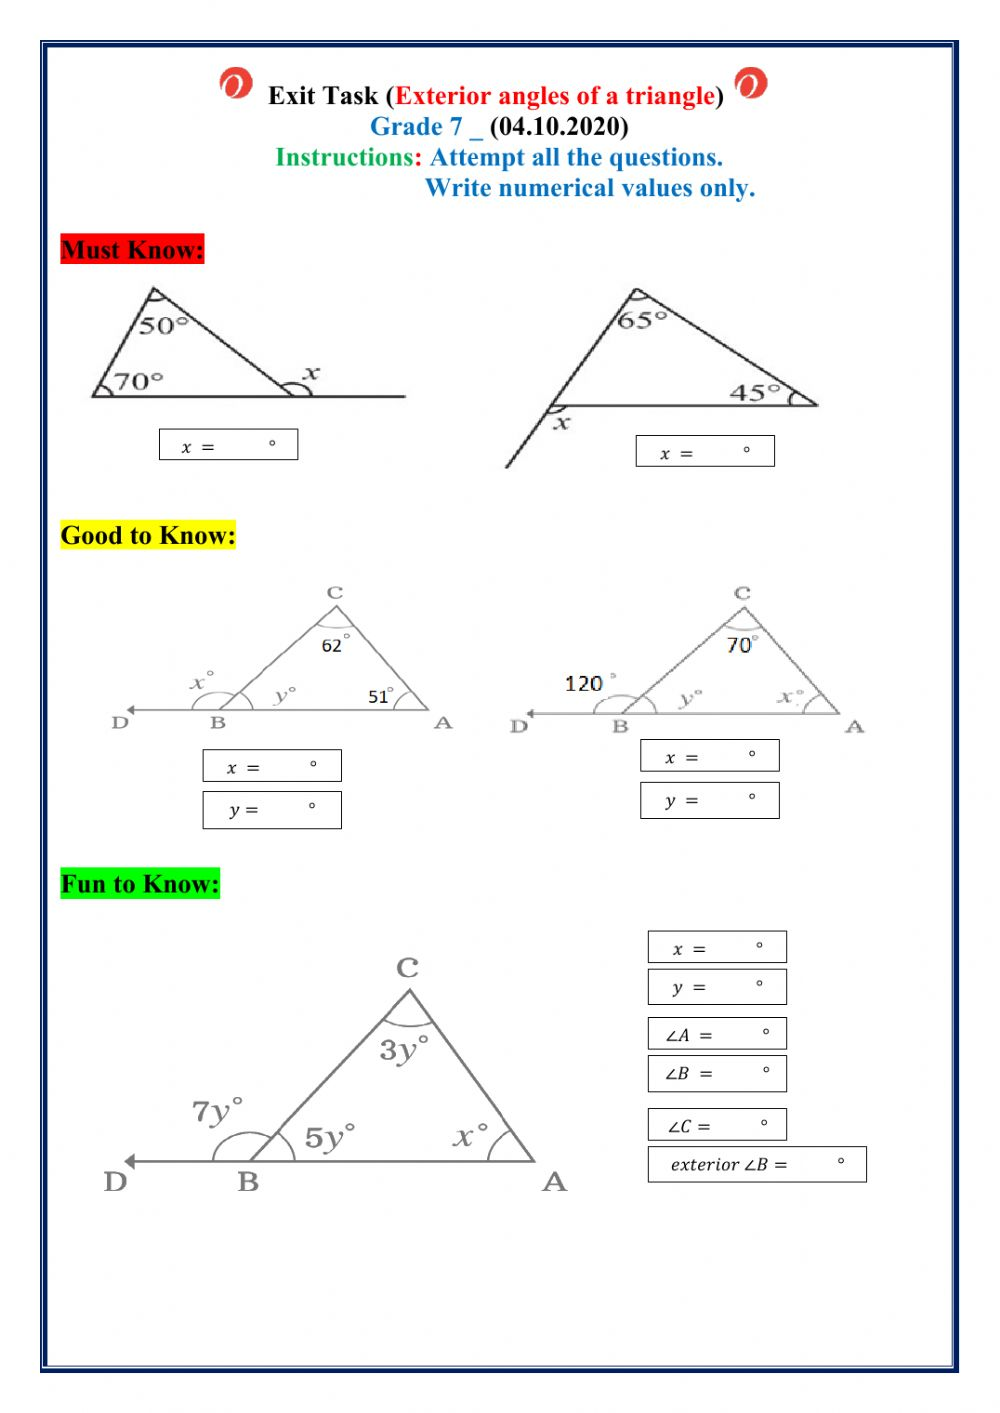 Exterior angles of a triangle worksheet